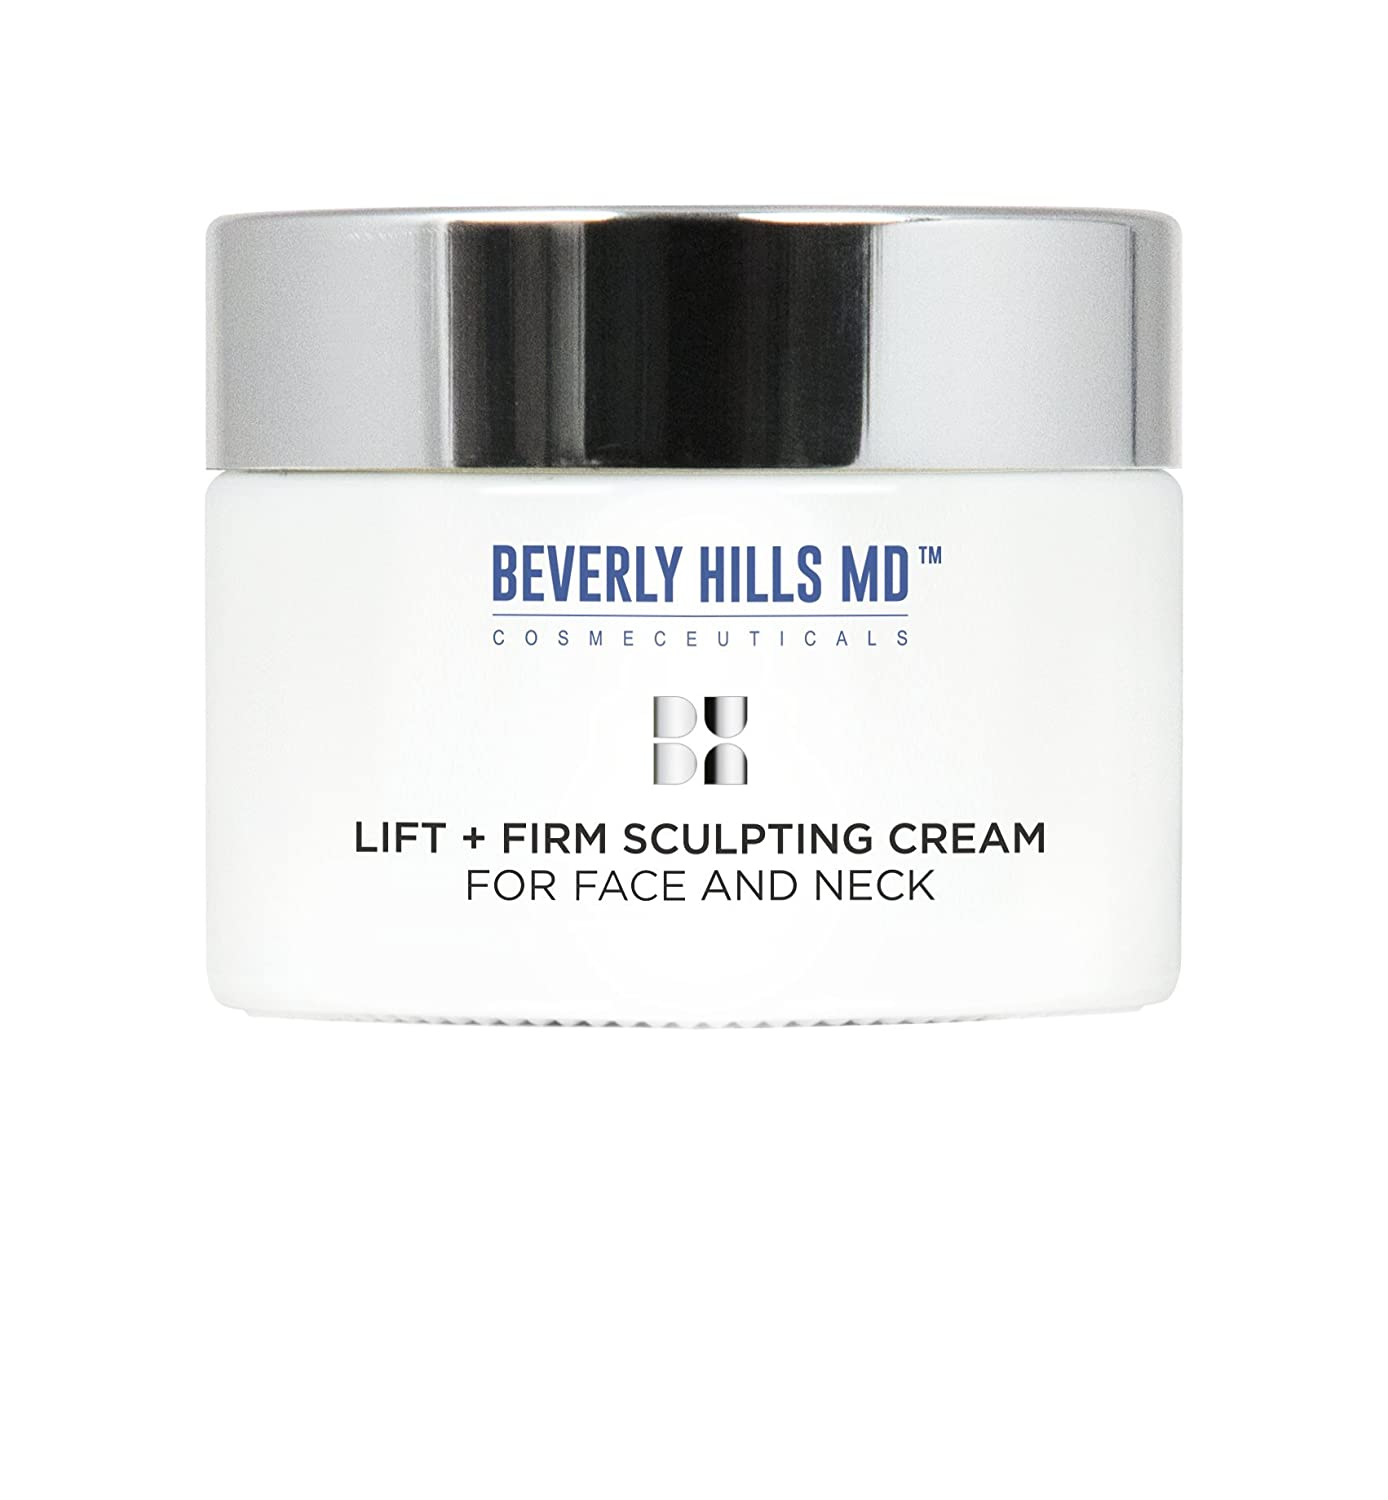 Beverly hill md lift and firming reviews - Amazon Com Beverly Hills Md Lift Firm Sculpting Cream For Face And Neck 1 69 Fl Oz 50 Ml Everything Else